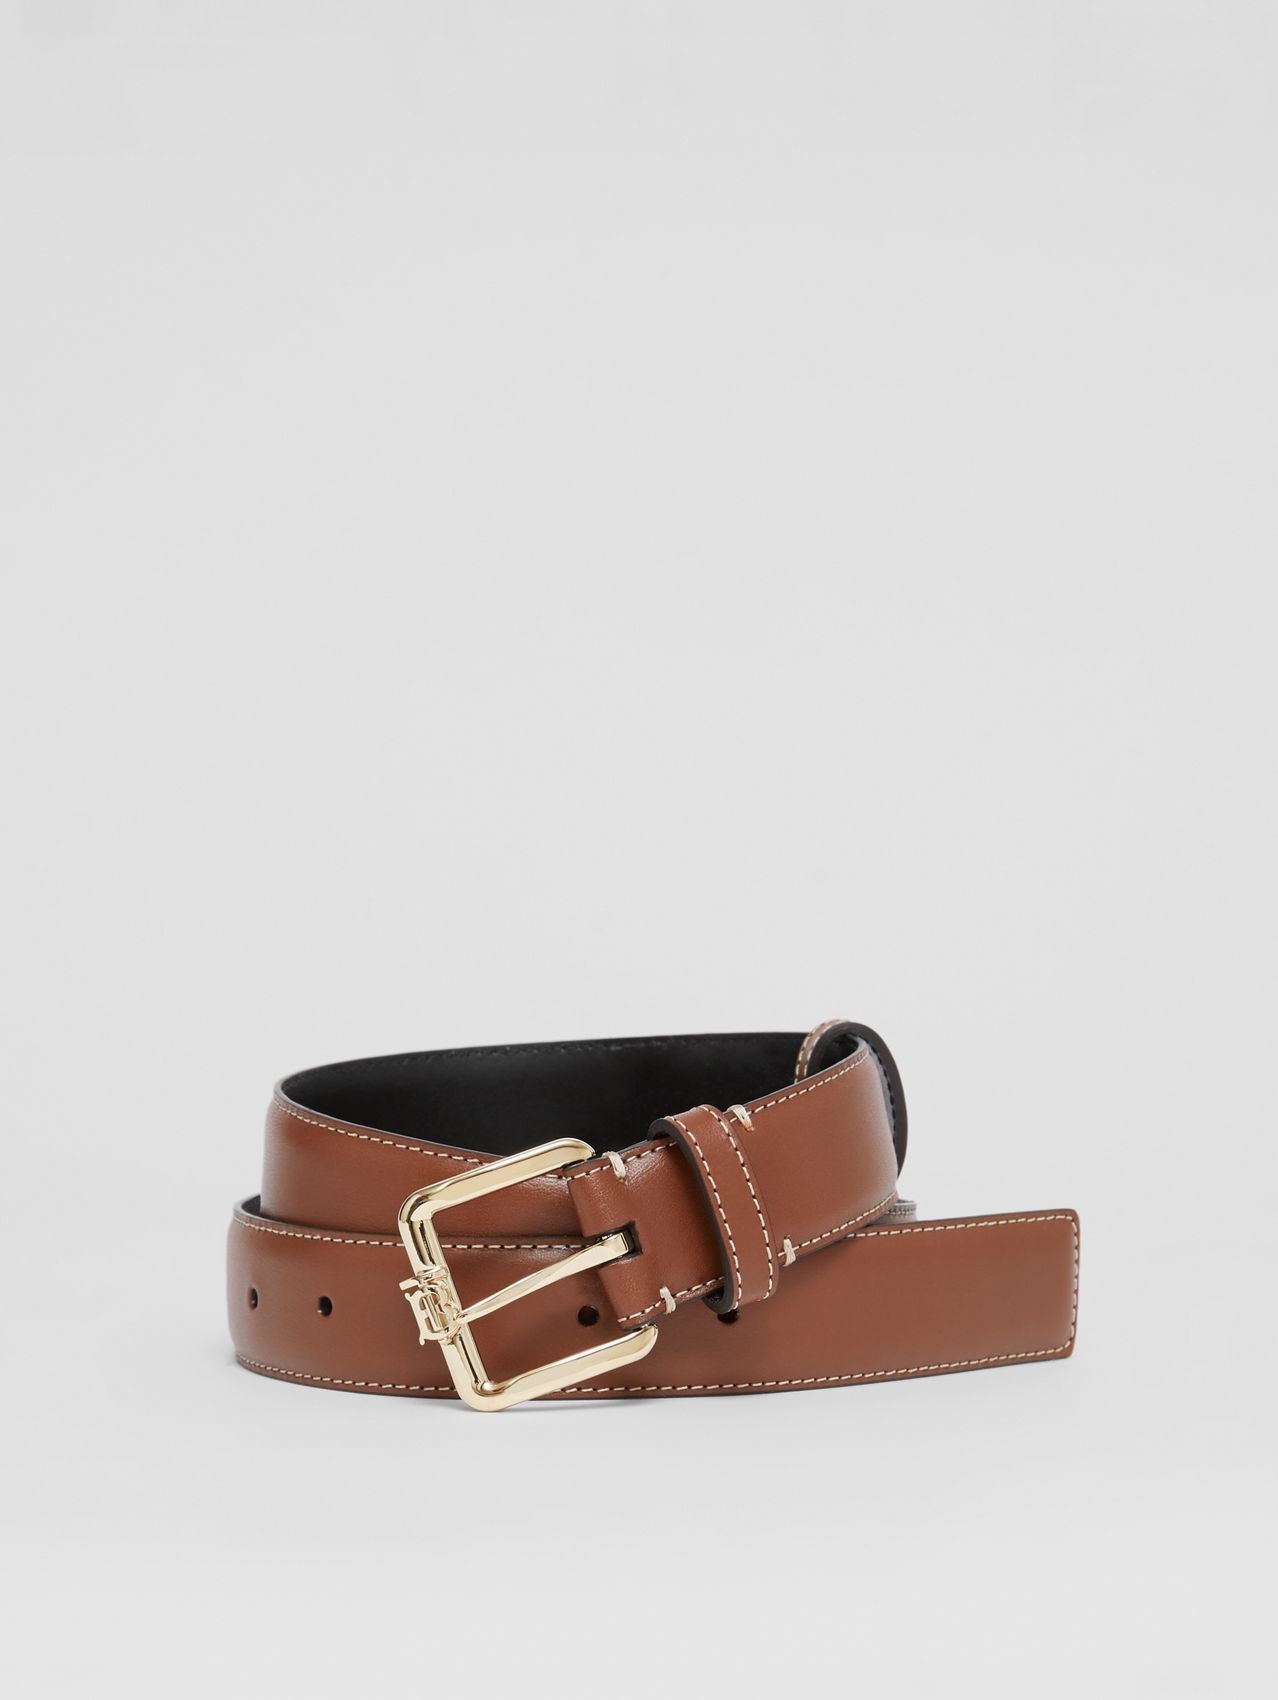 Monogram Motif Topstitched Leather Belt in Tan/light Gold